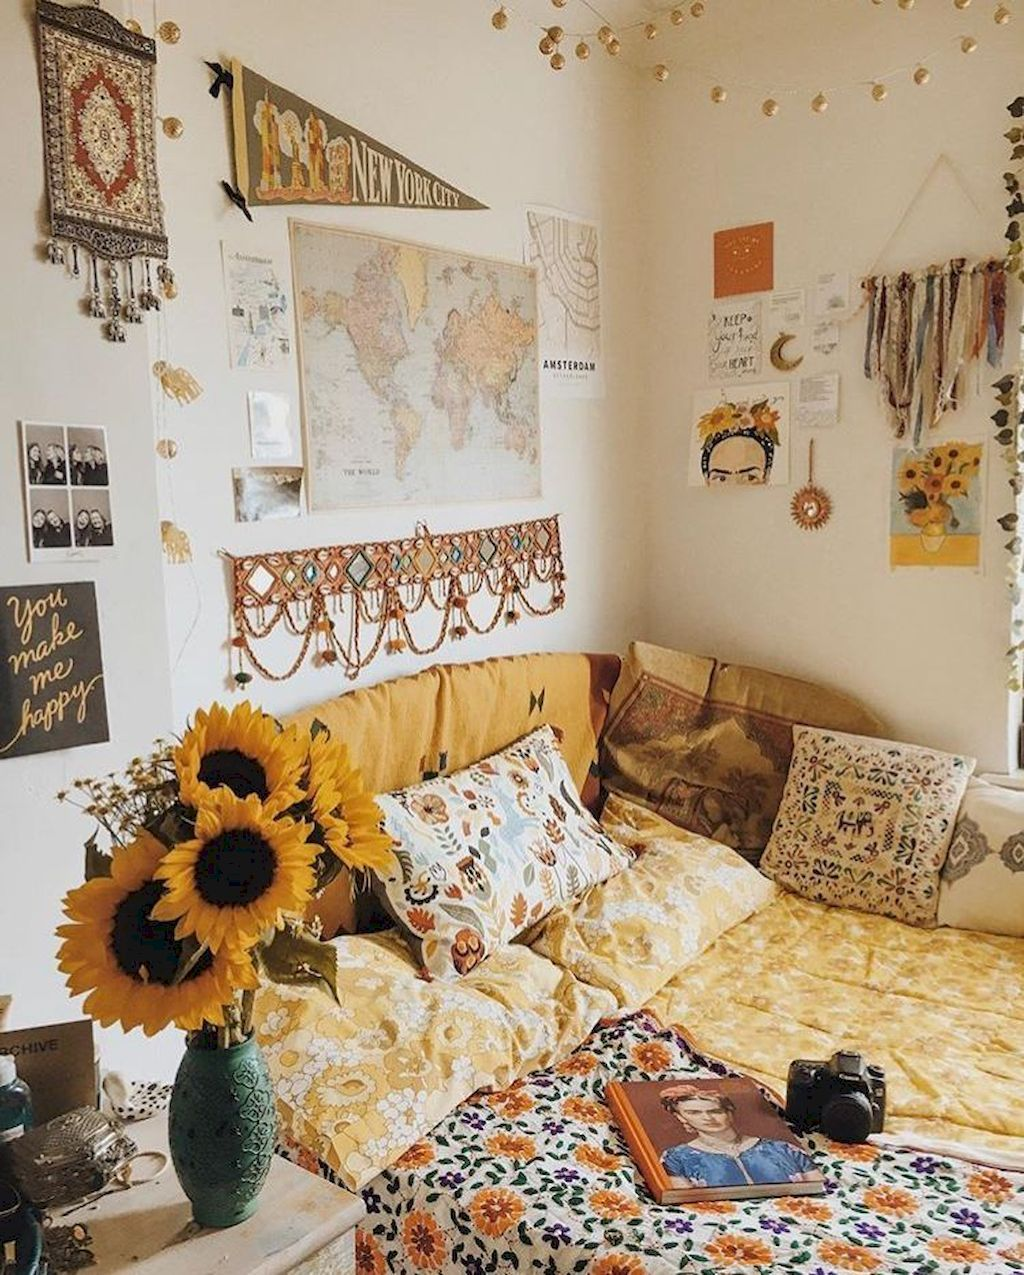 Personalized bed sheet design ideas in images also best interior fire places living room rh pinterest